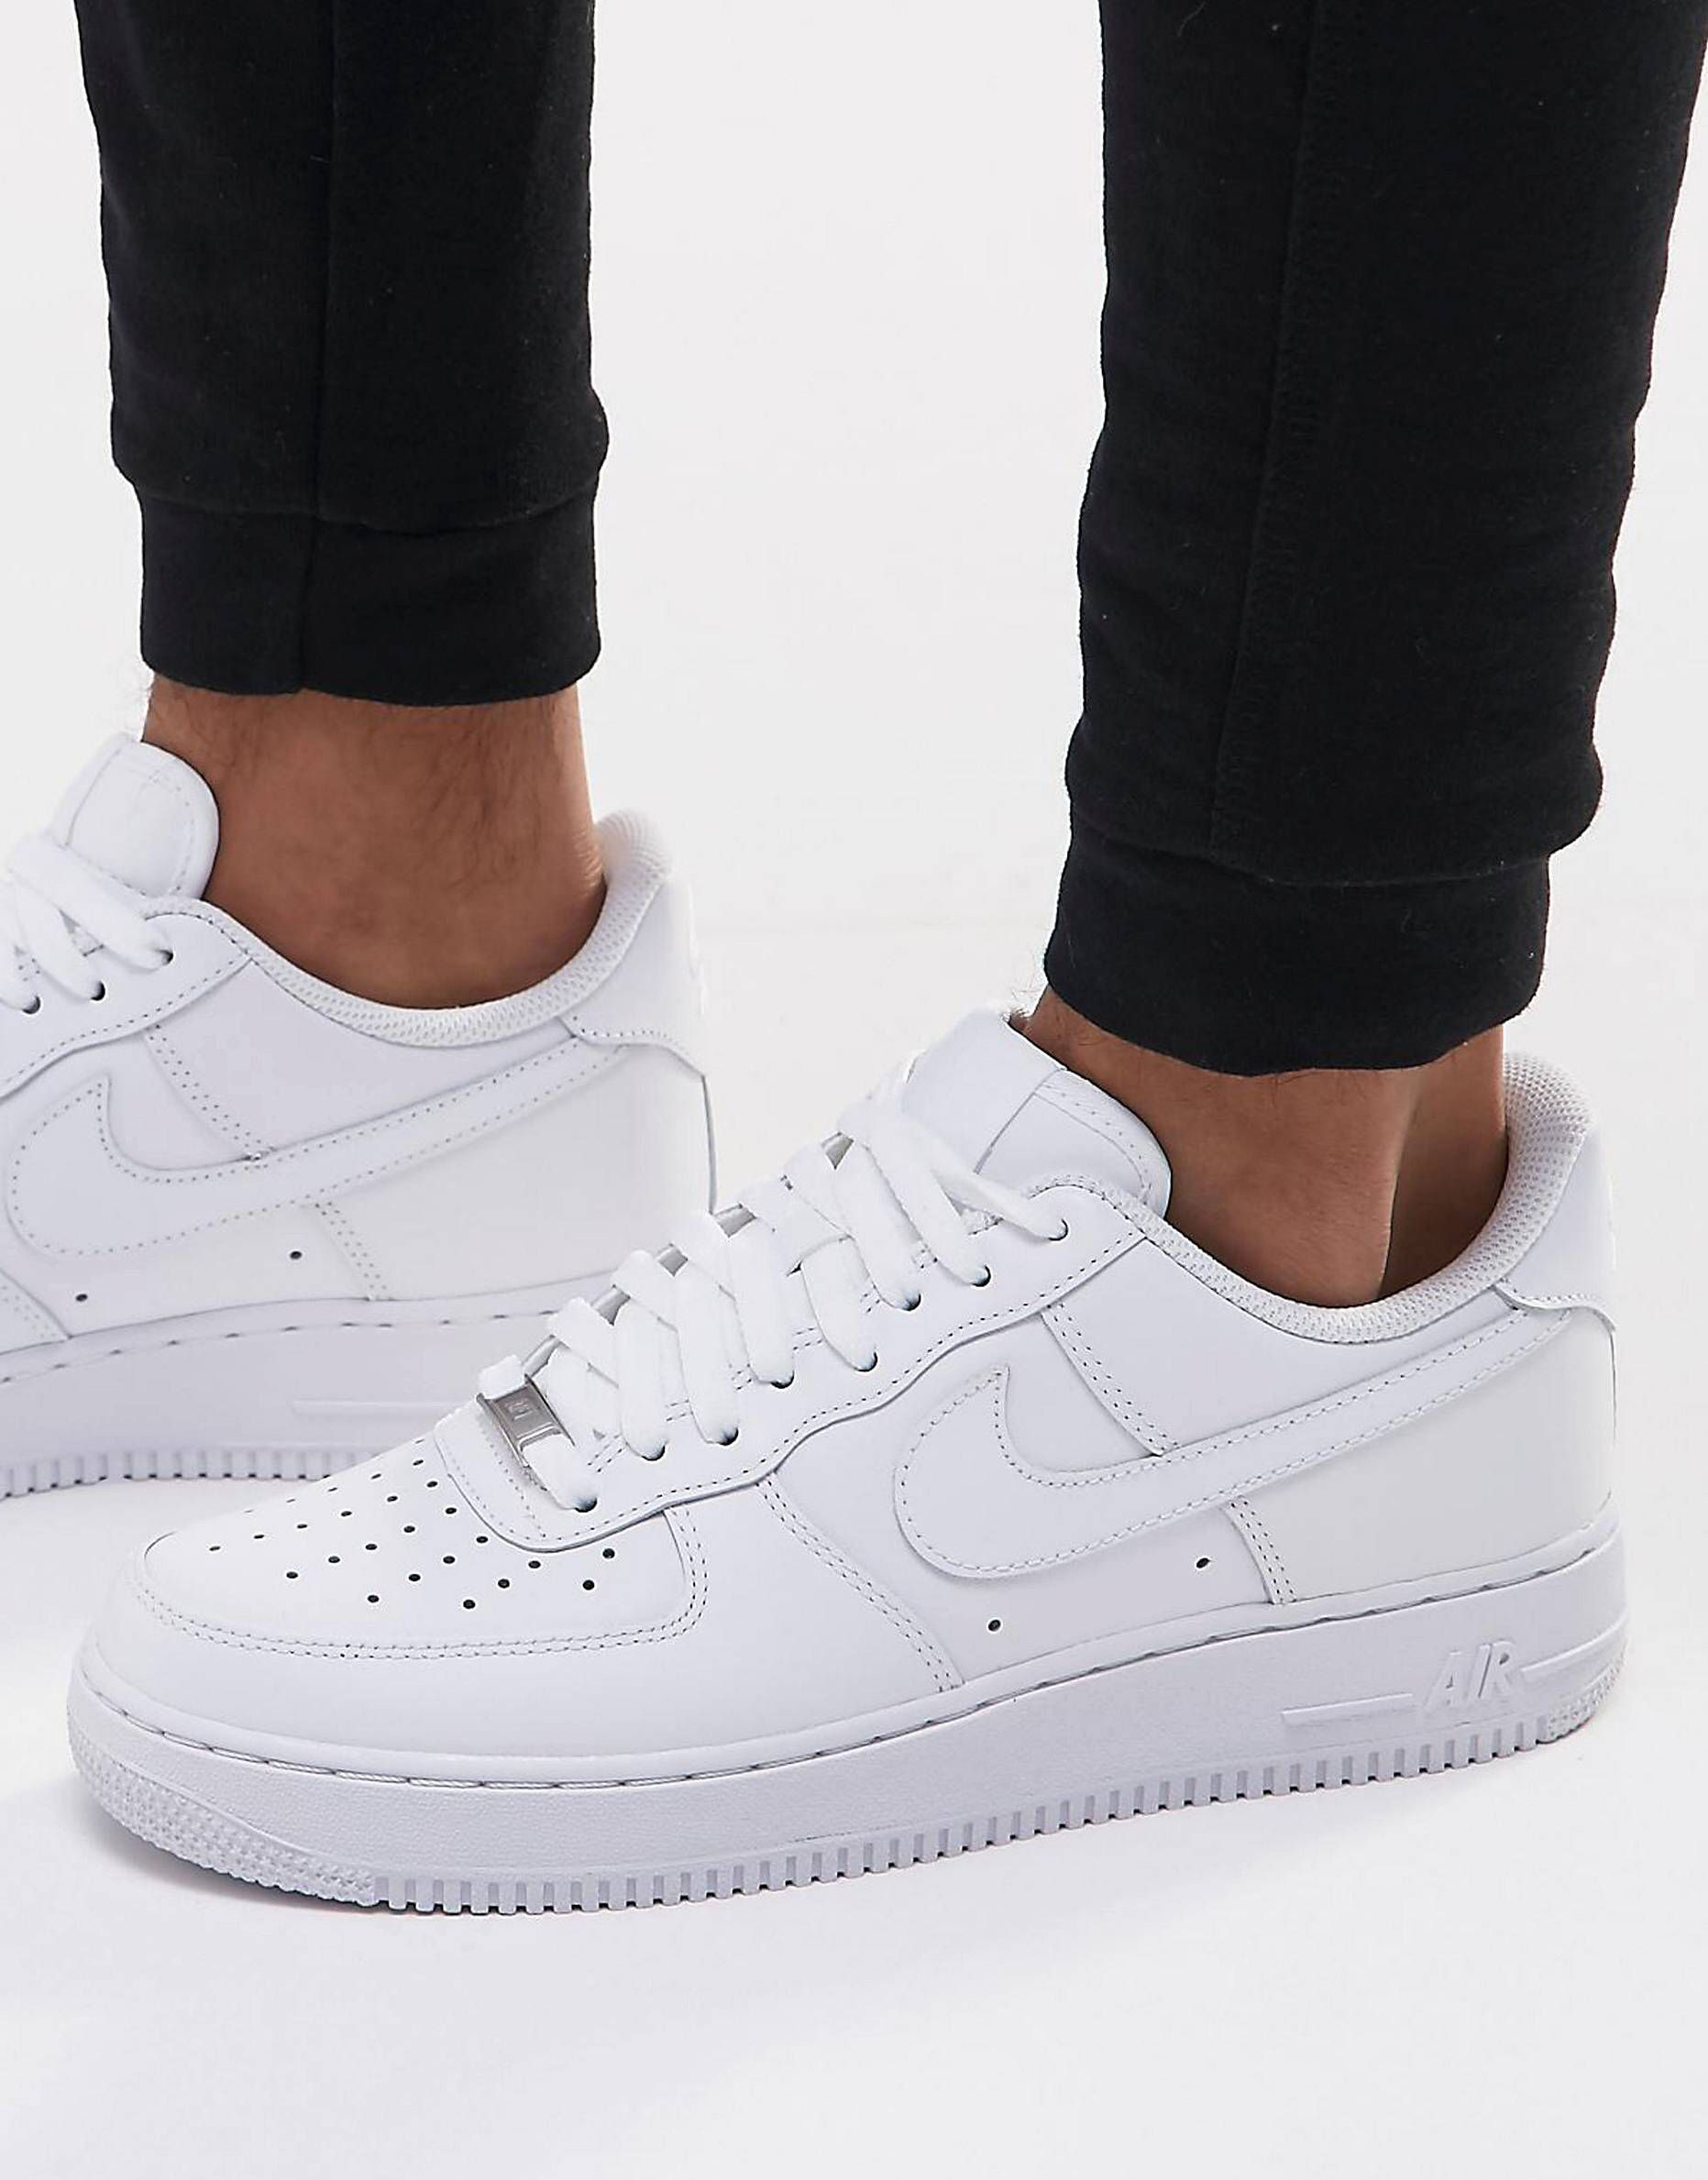 f58dee0184b42a Nike Air Force 1 '07 sneakers in white 315122-111 in 2019 | shoes ...